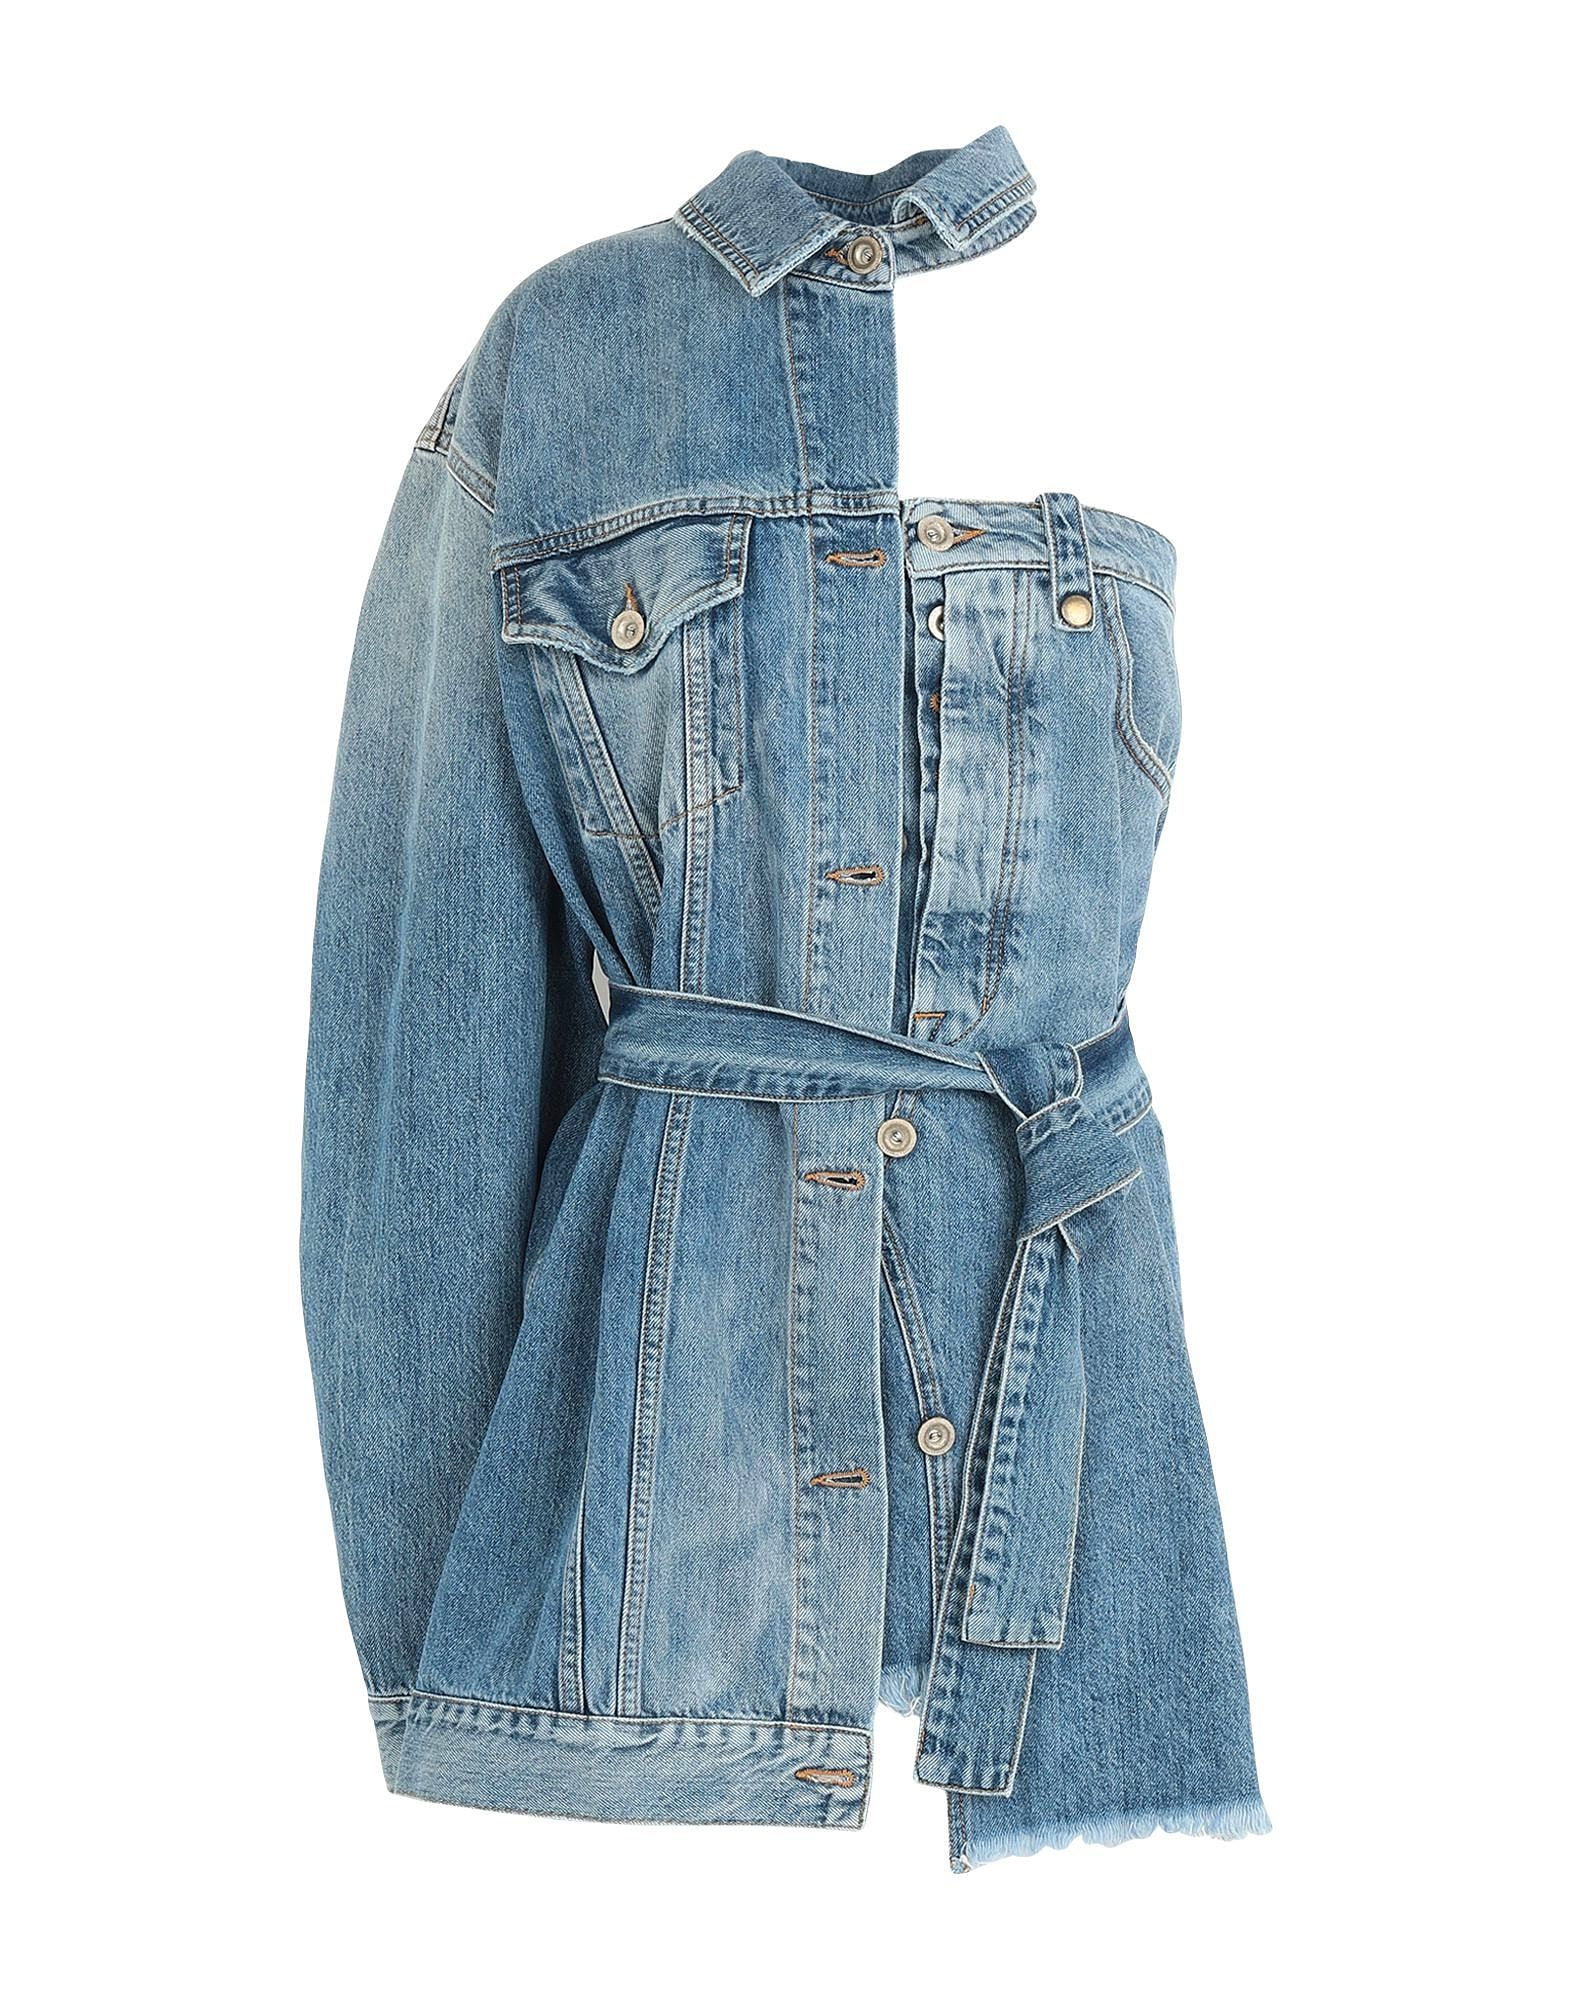 BEN TAVERNITI™ UNRAVEL PROJECT Denim dress - Dress